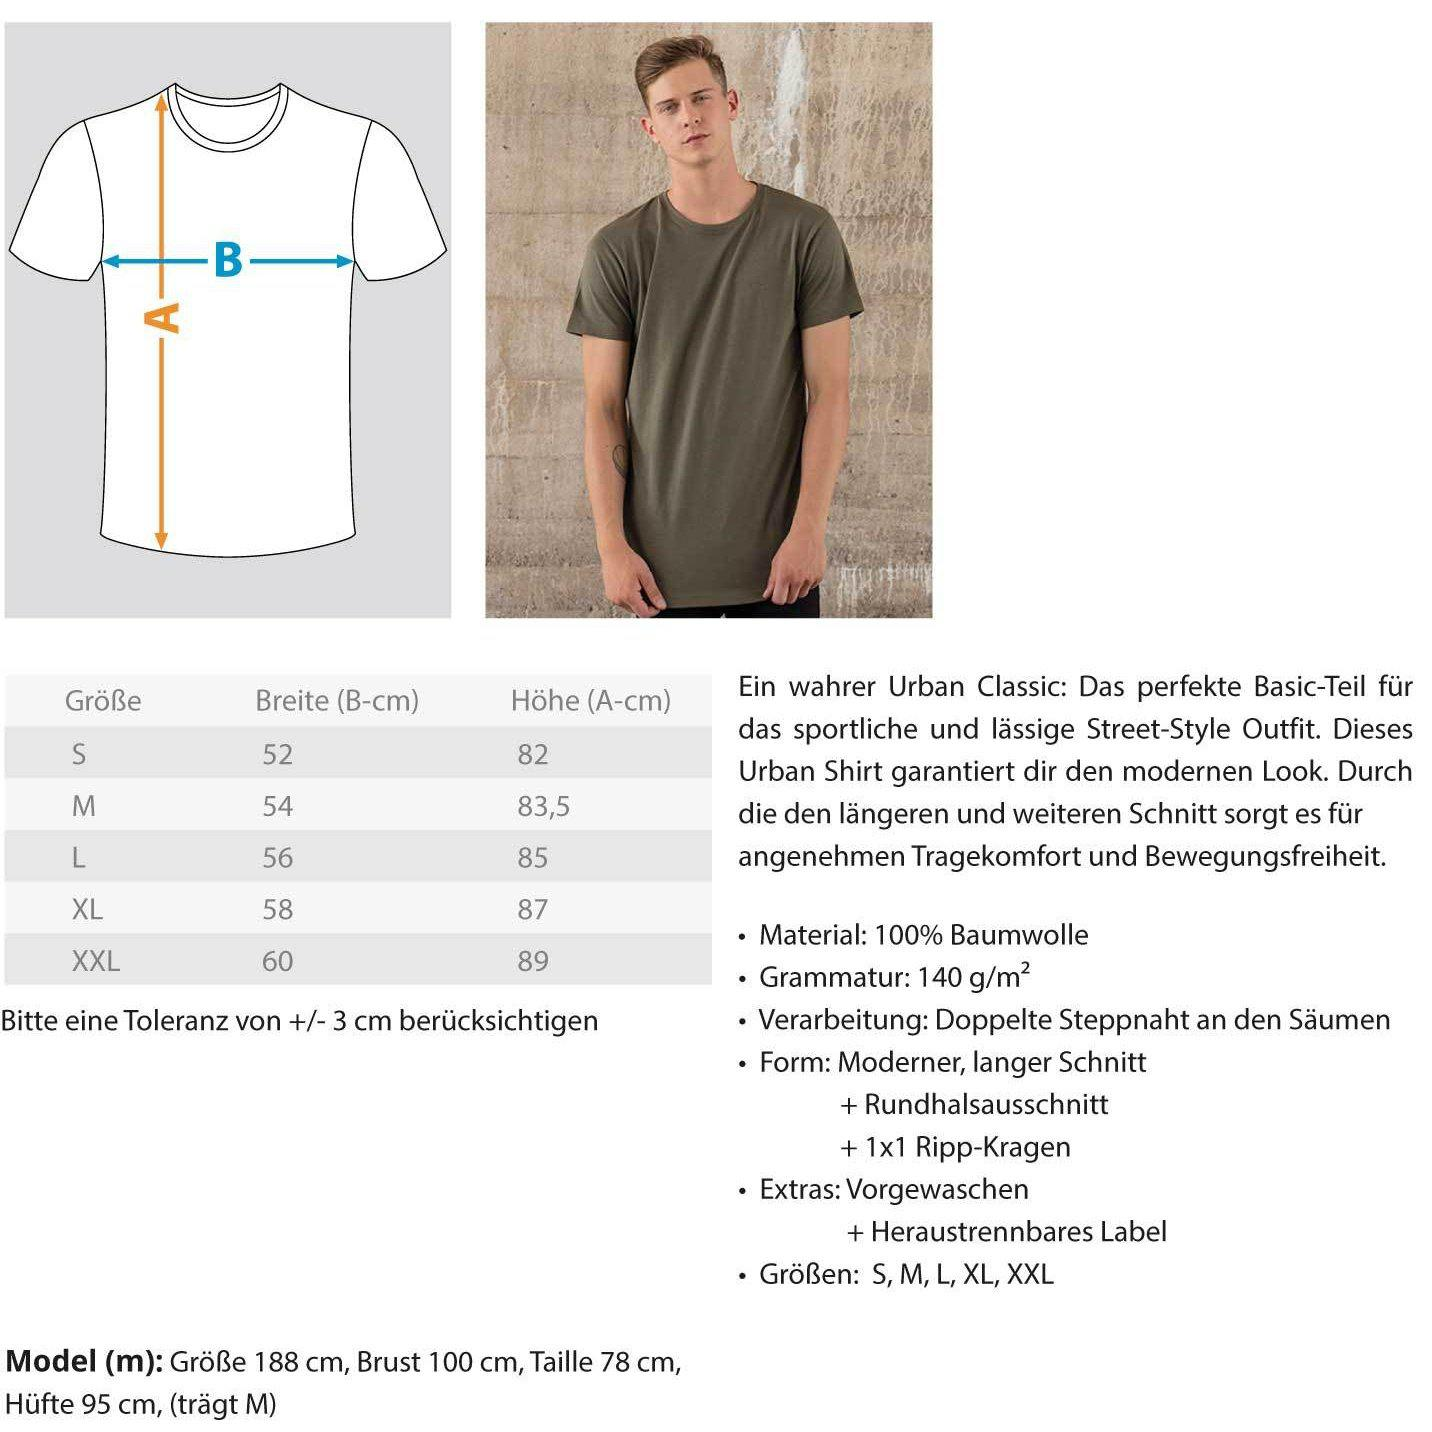 ACID HOUSE -Rave On!® - Herren Long Tee Men Long Tee - Rave On!® der Club & Techno Szene Shop für Coole Junge Mode Streetwear Style & Fashion Outfits + Sexy Festival 420 Stuff